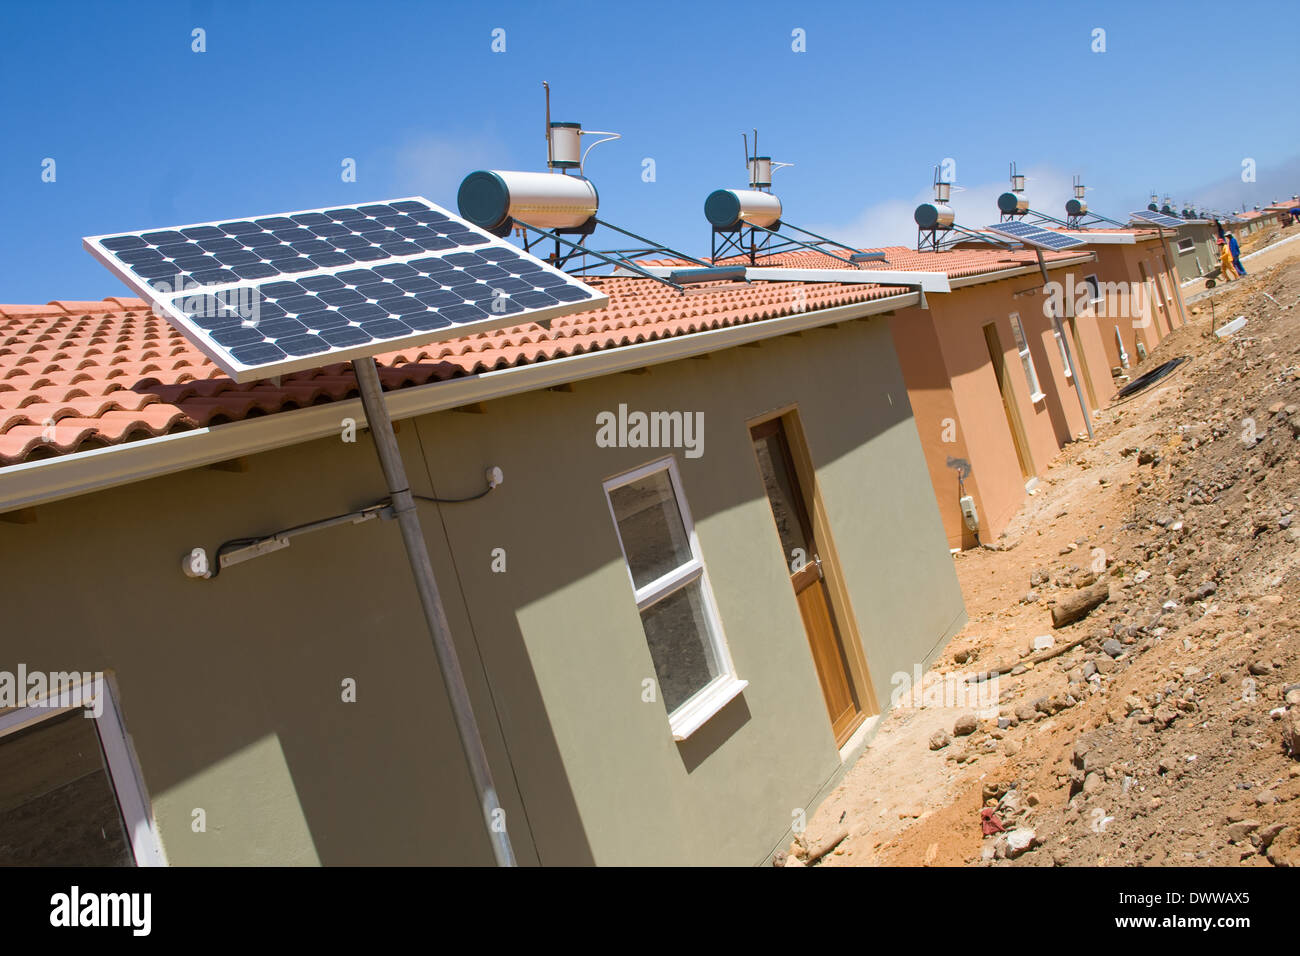 Cost to install solar panels on roof - Solar Panels Are Installed On The Roofs Of The Low Cost Housing Development In Kleinmond